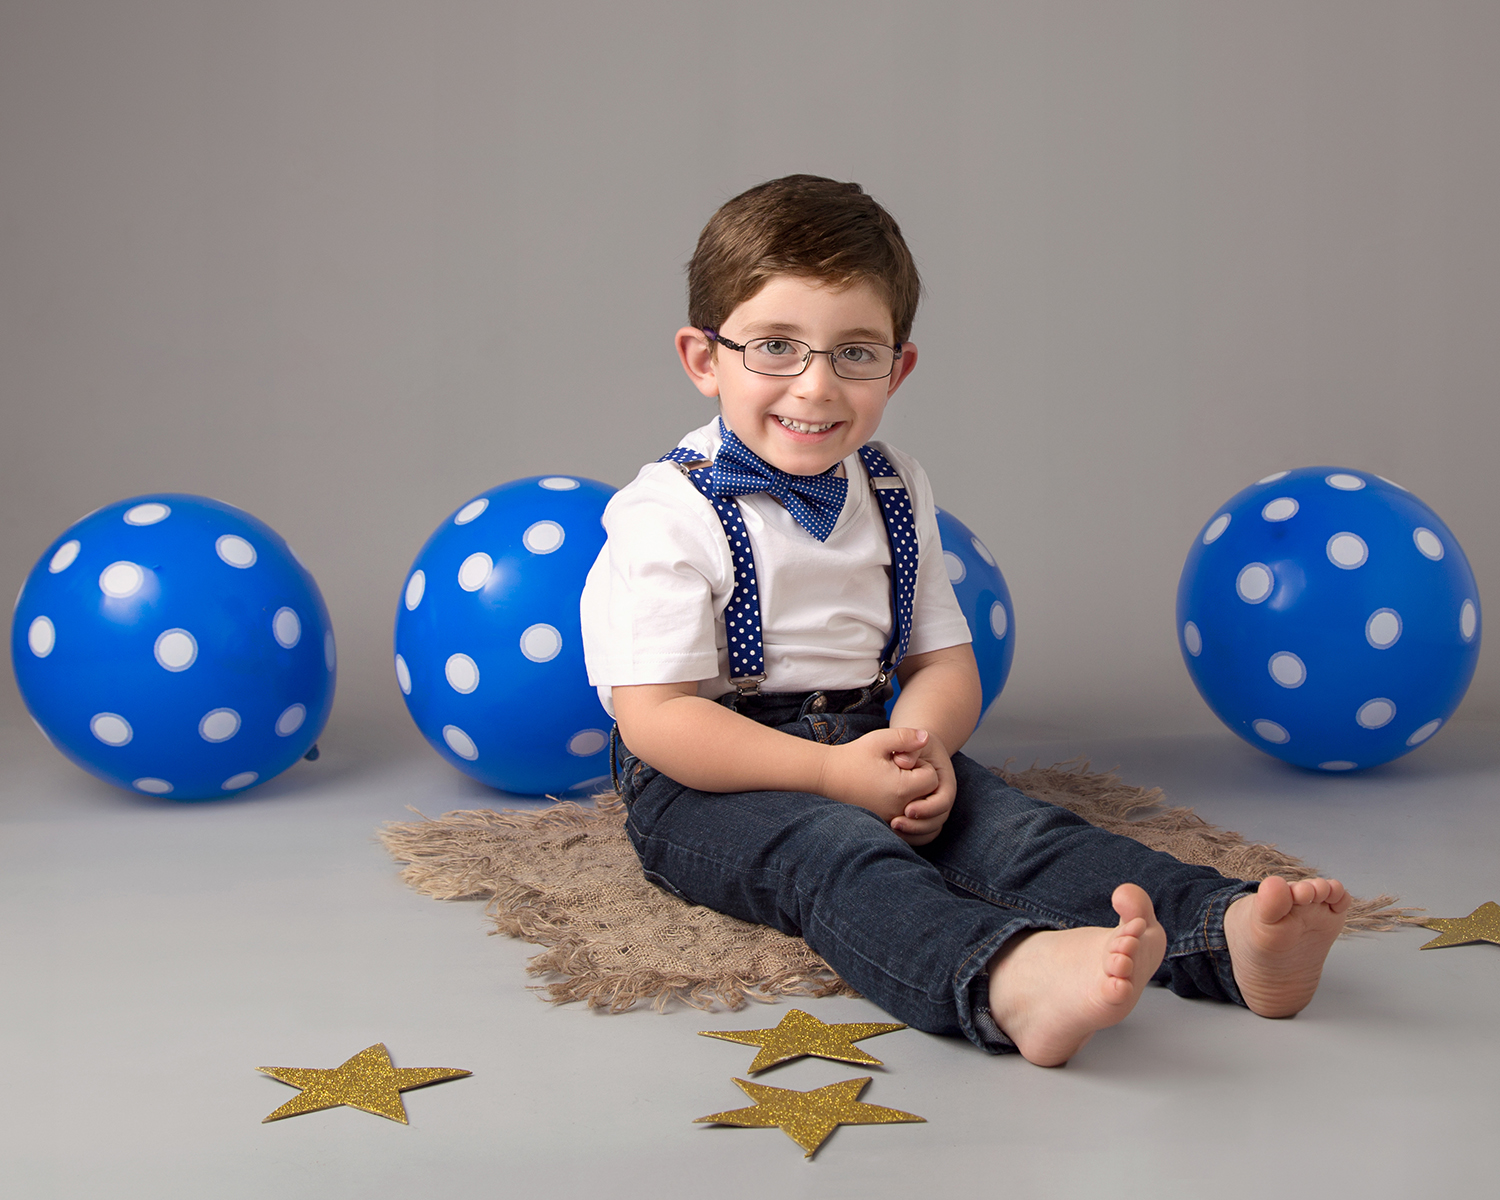 Chidren and family photographer based in Gloucestershire Elisabeth Franco Photography